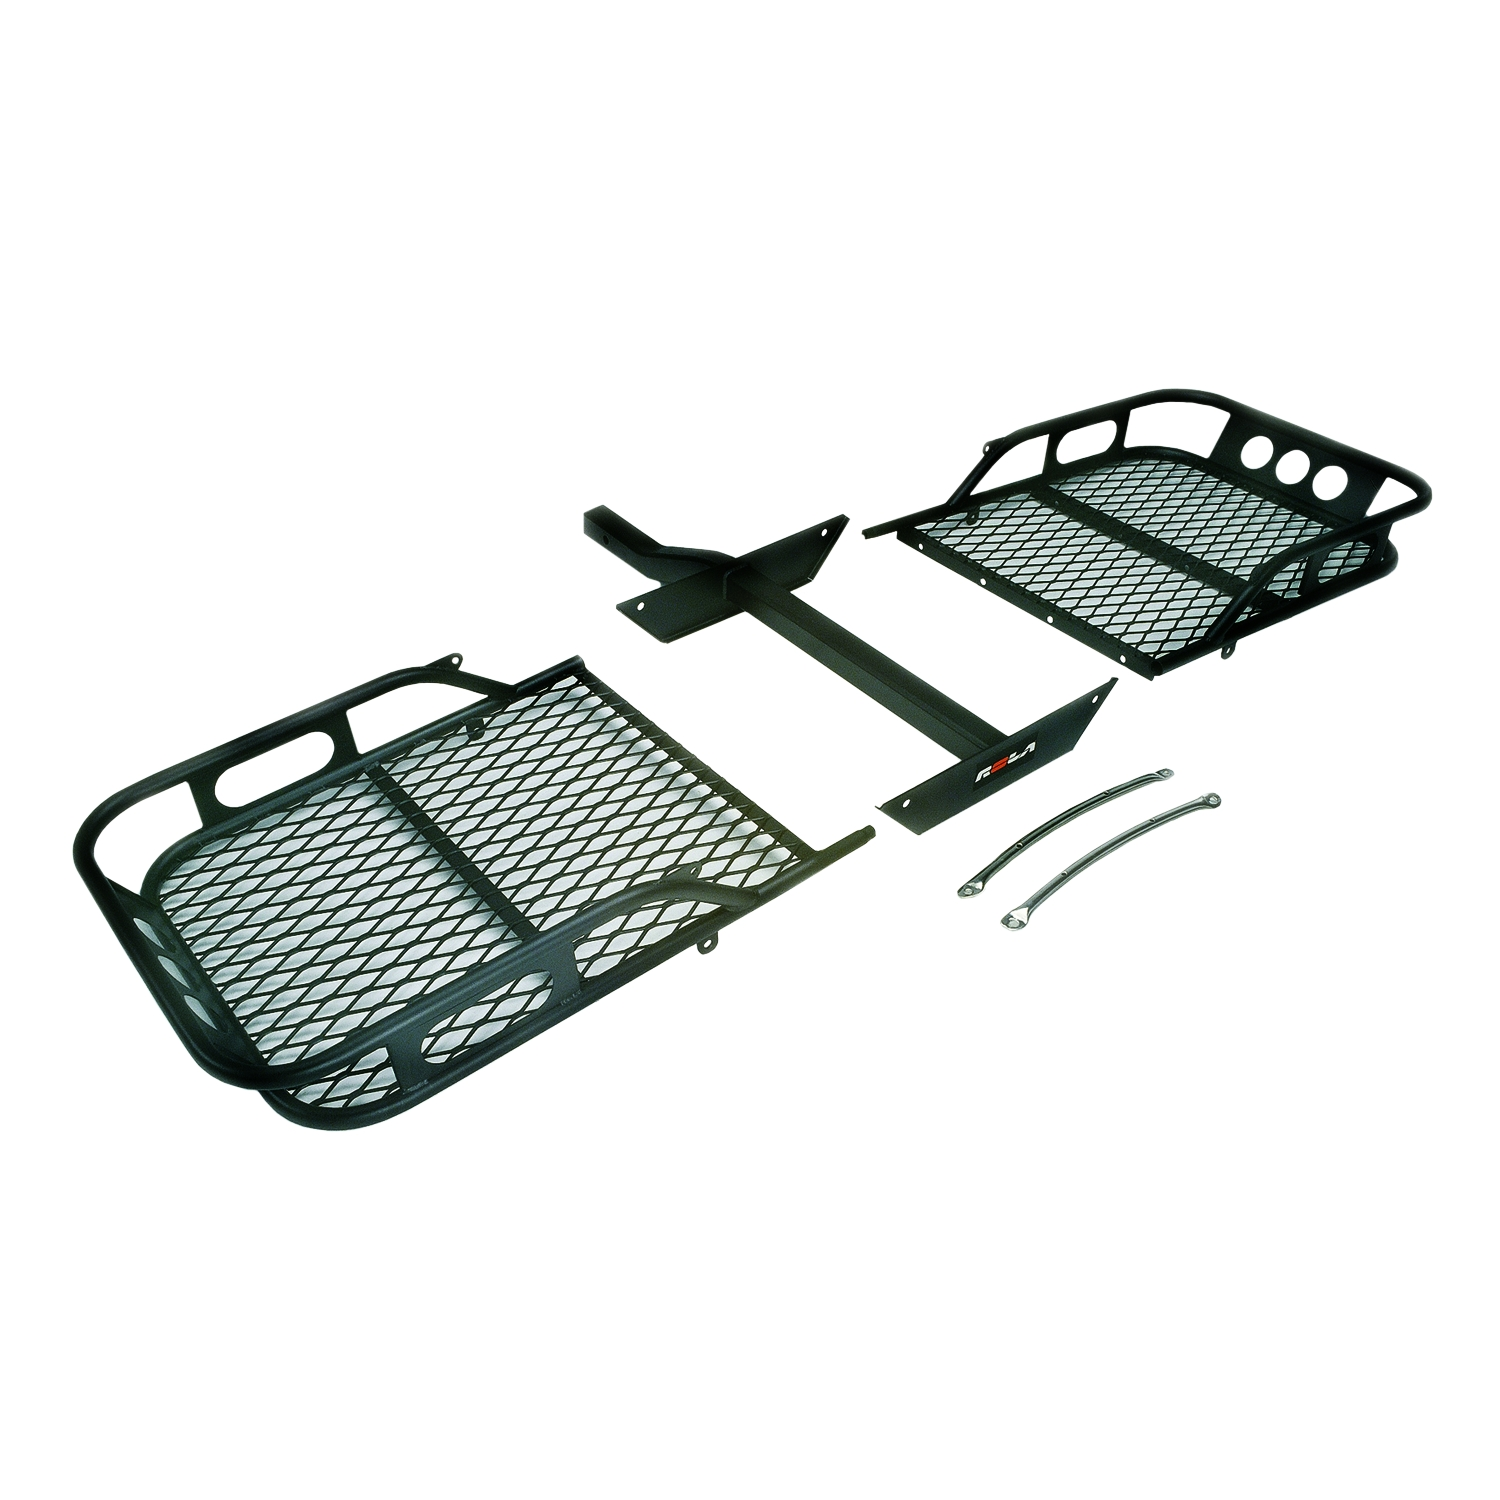 59502 Rola Trailer Hitch Cargo Carrier Use With 2 Inch Receiver